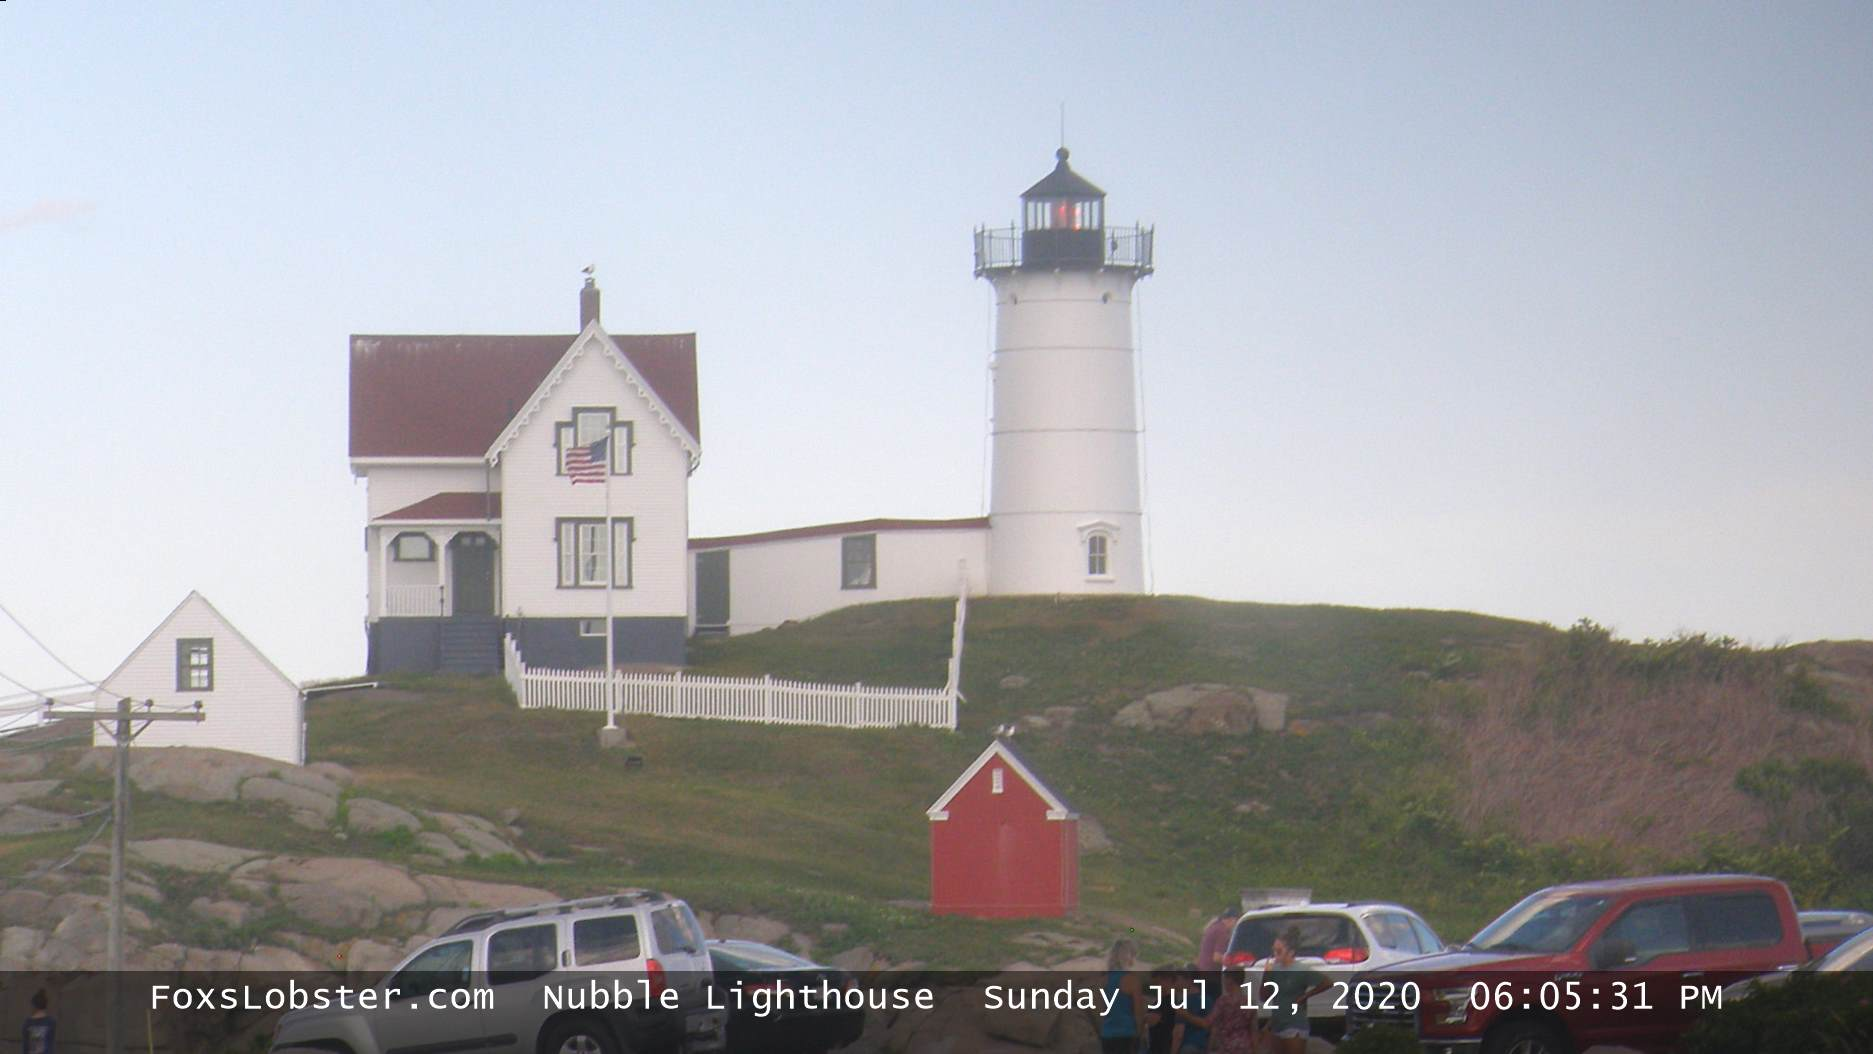 Live Webcam of The Nubble Lighthouse, York, Maine.